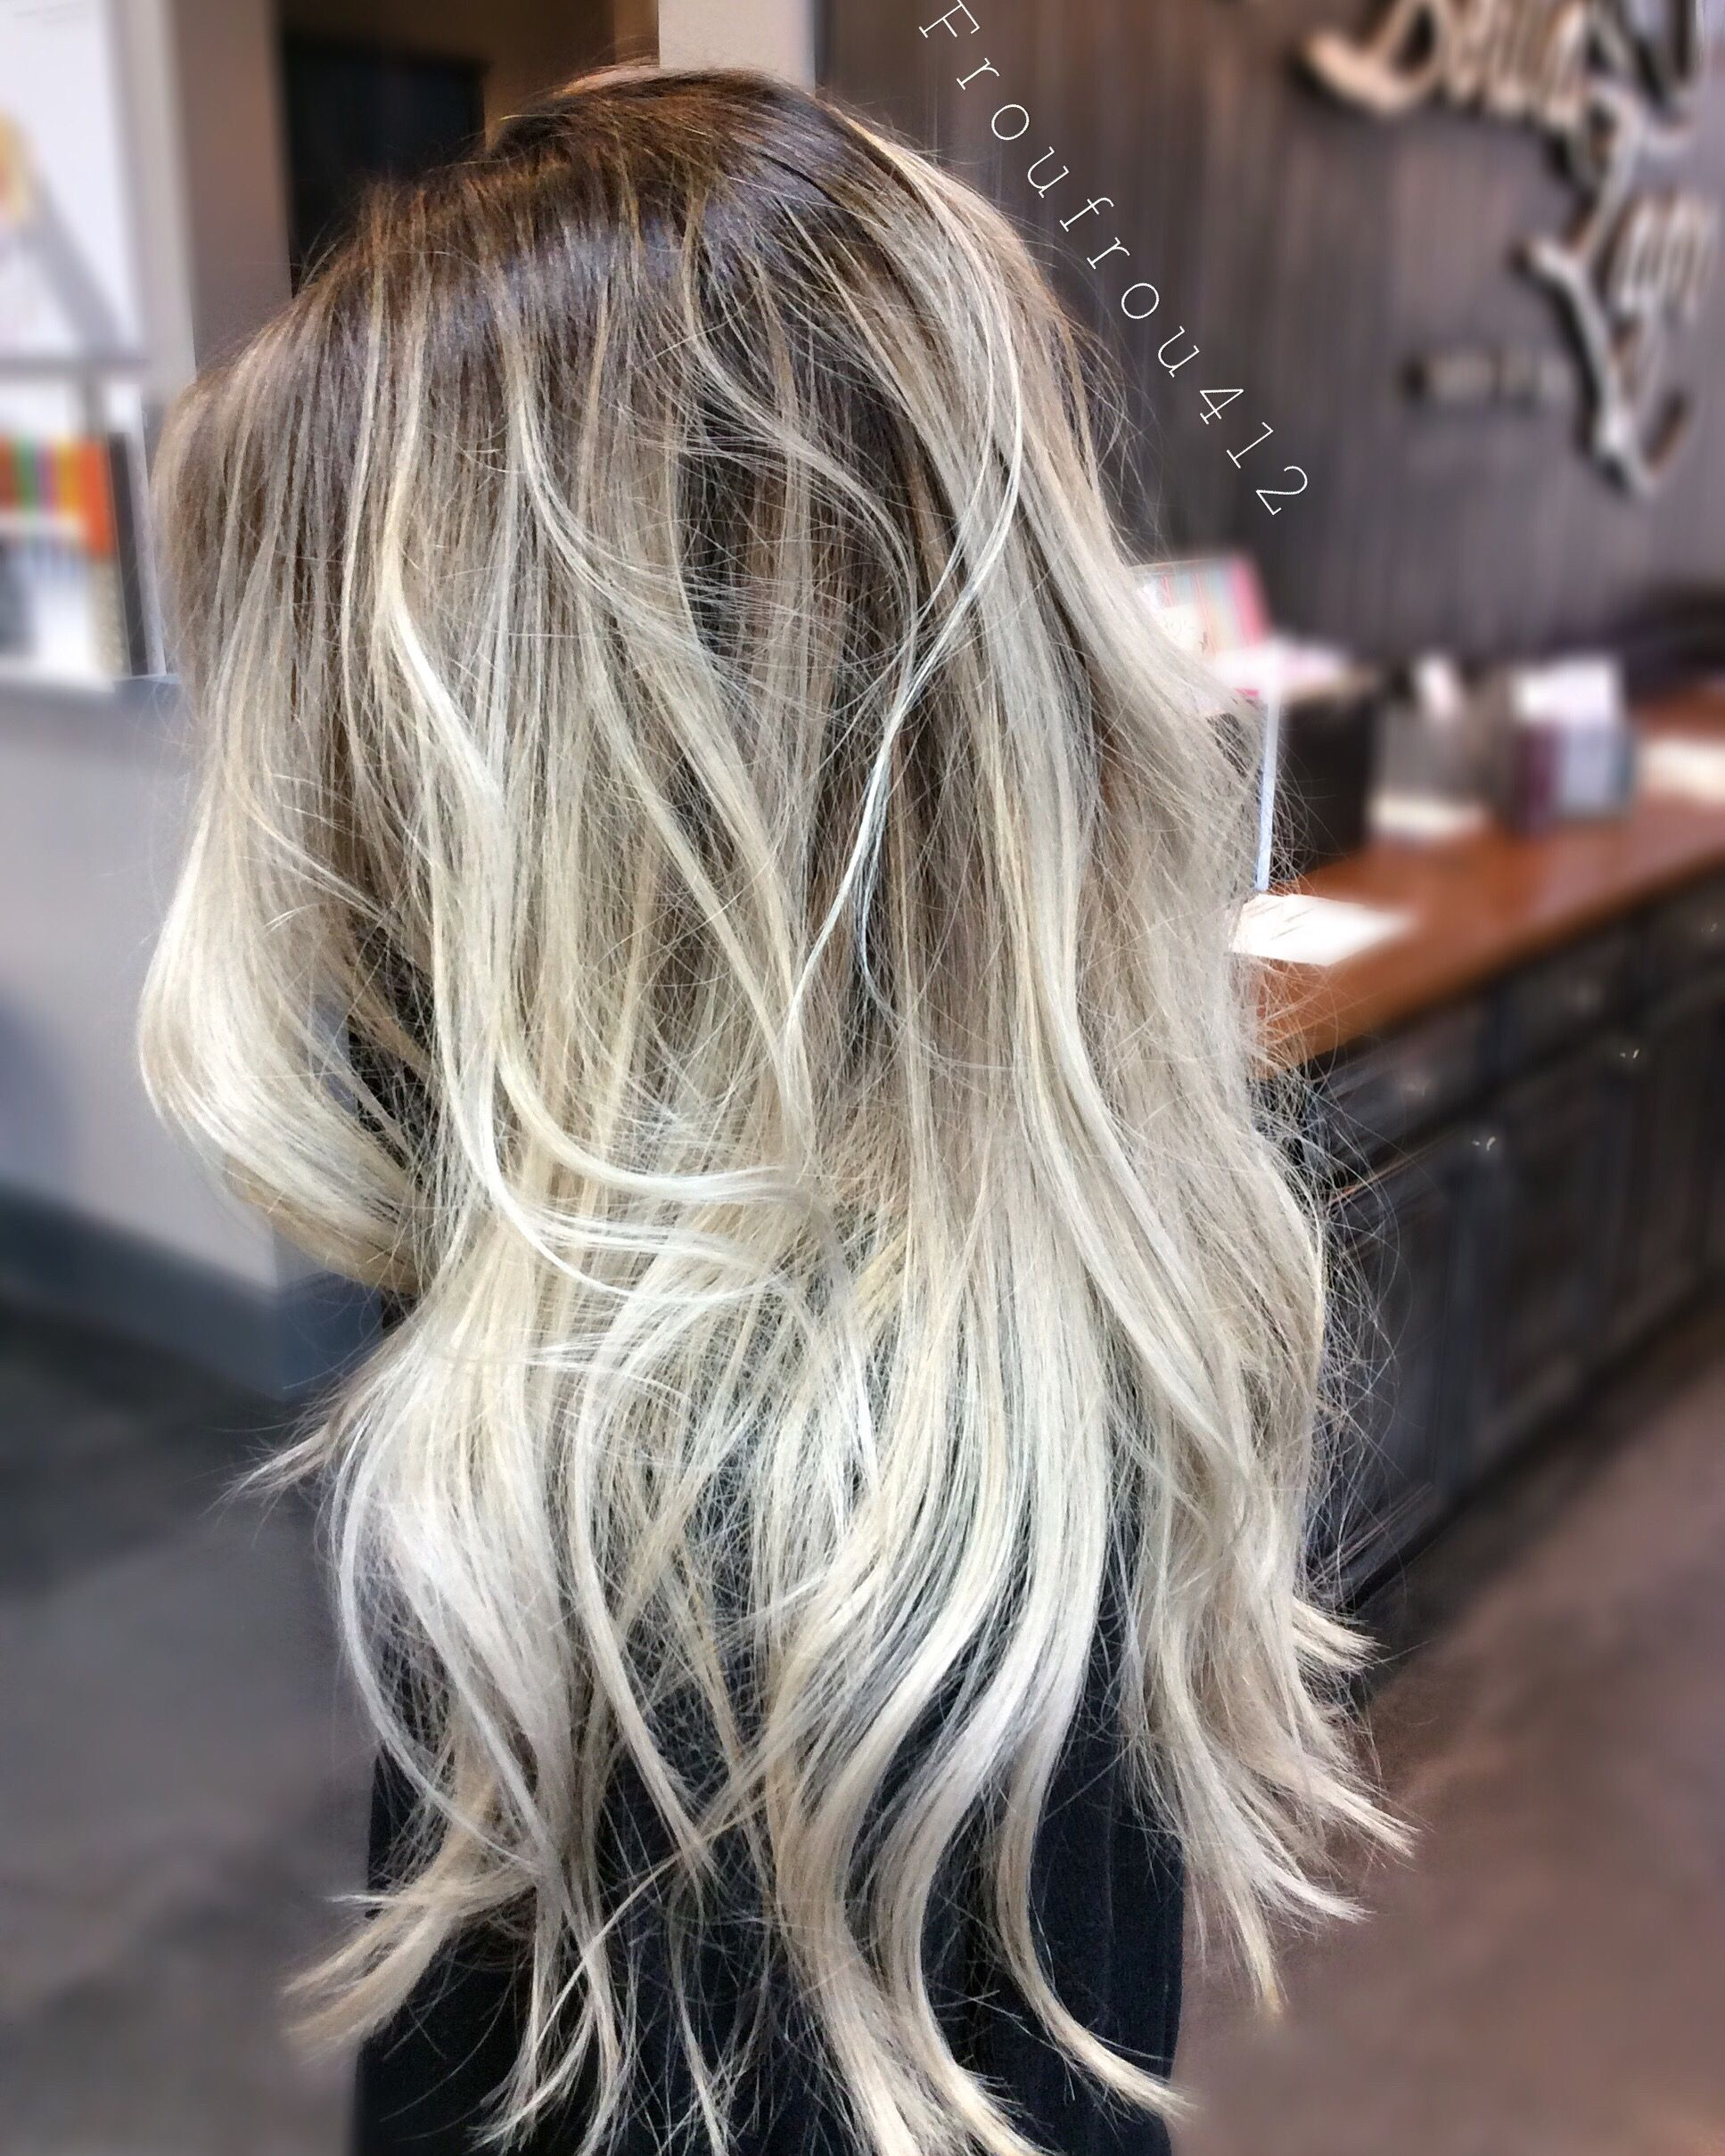 Instagram Froufrou412 Or Ashsmith412 Balayage Blonde Color Melted